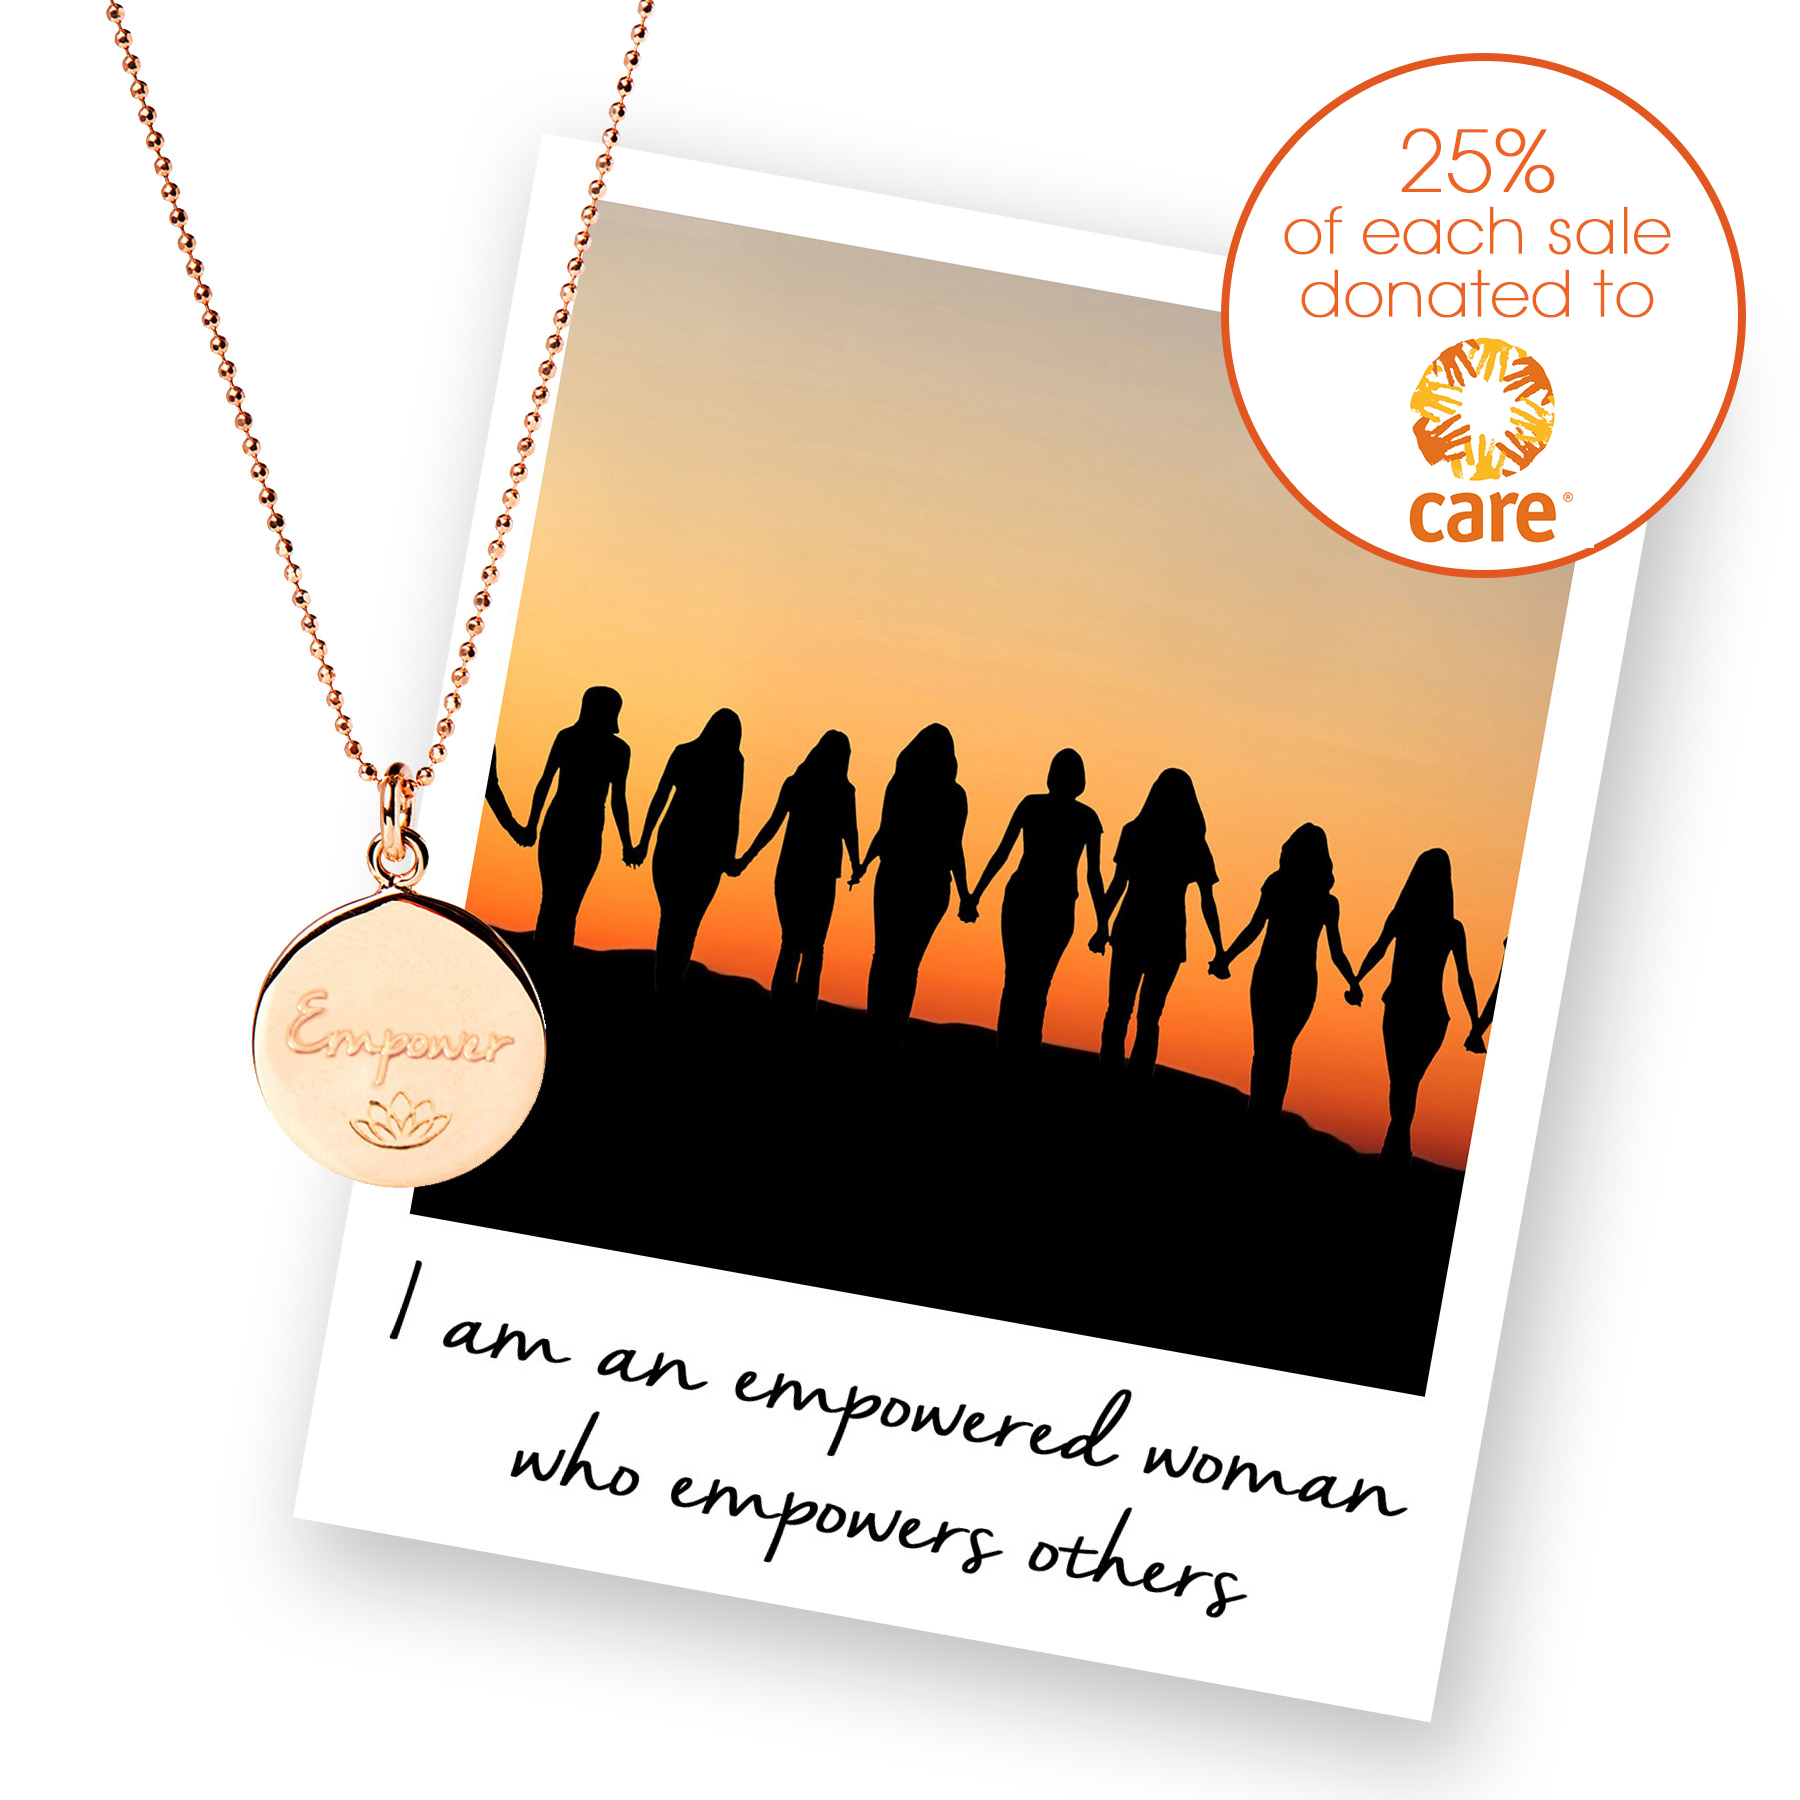 Care International UK Charity Necklace - Mantra Jewellery